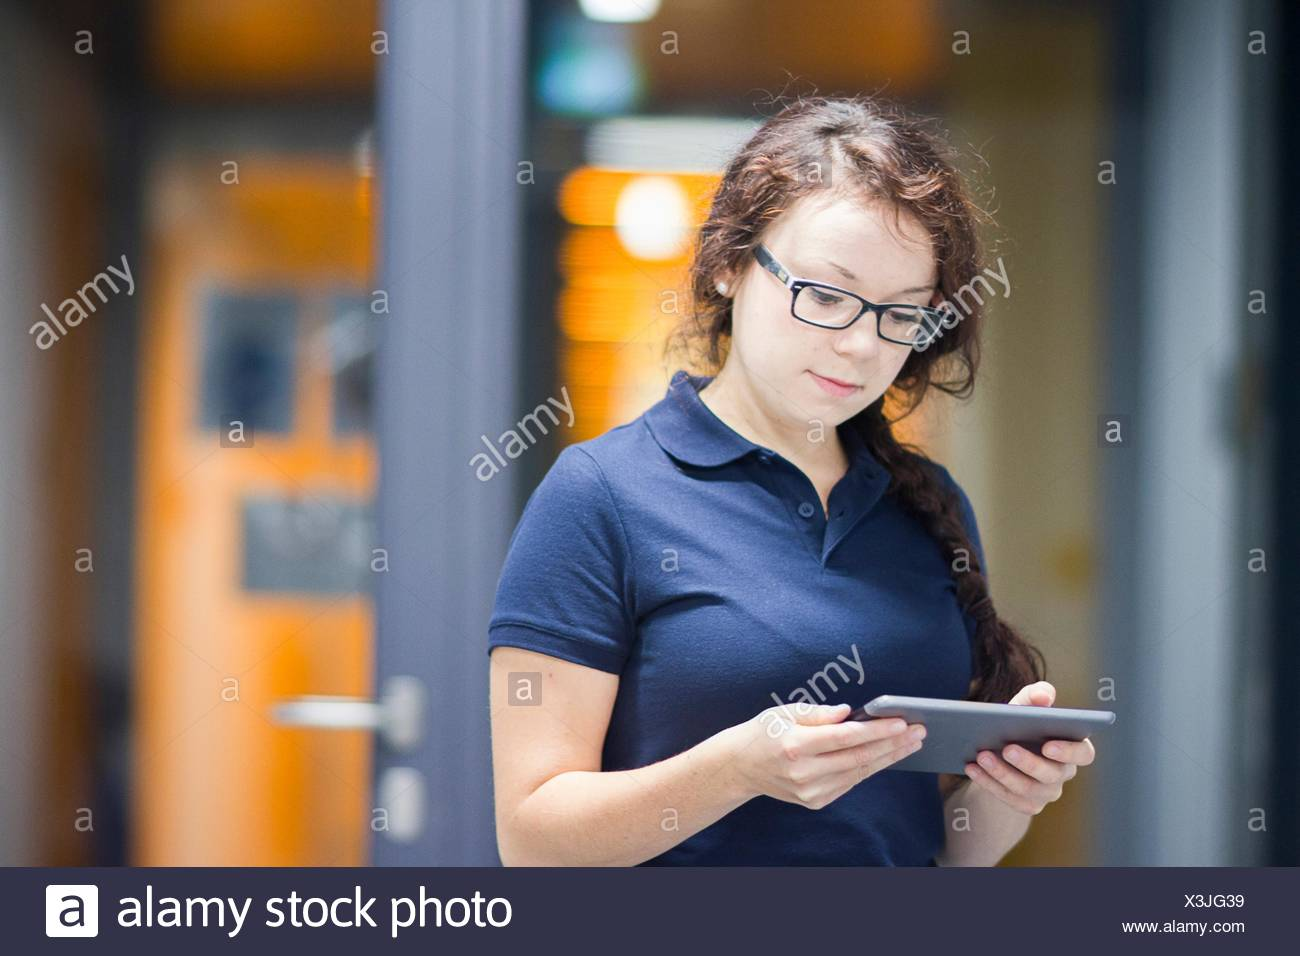 Technician using digital tablet in laboratory - Stock Image